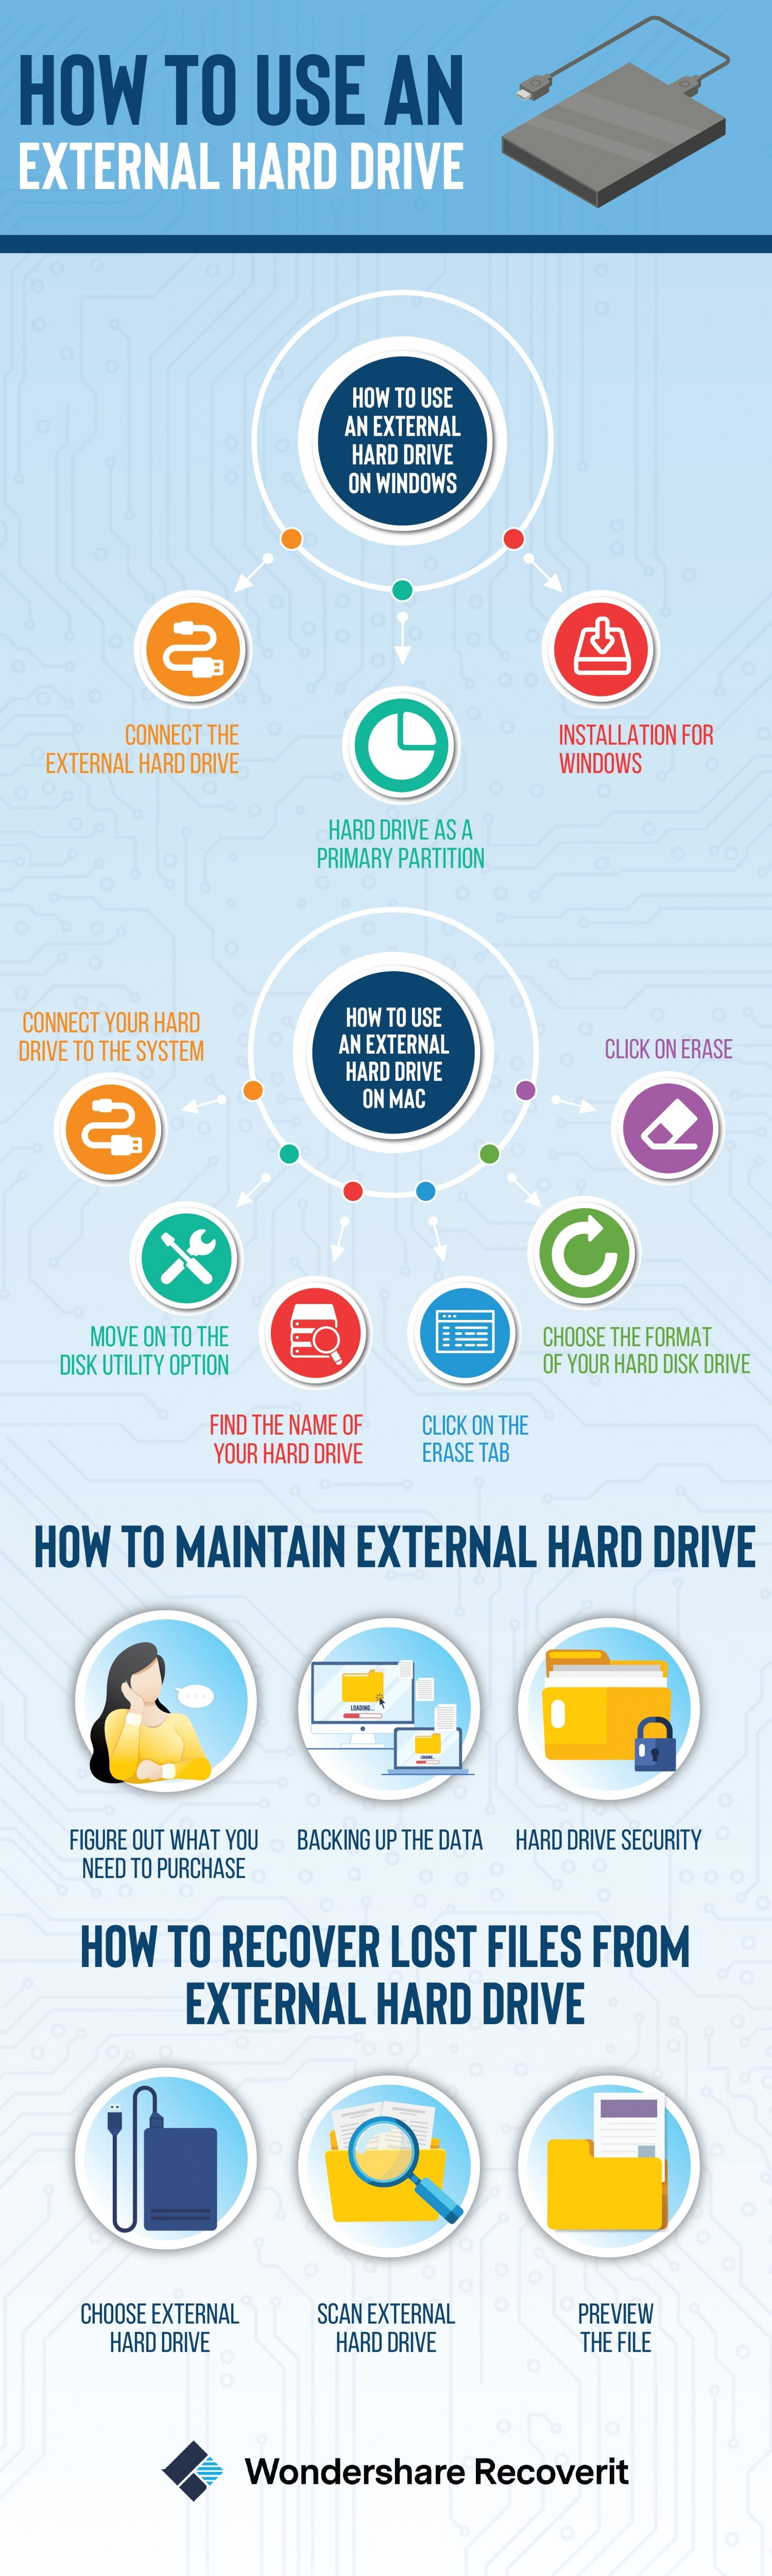 use-an-external-hard-drive